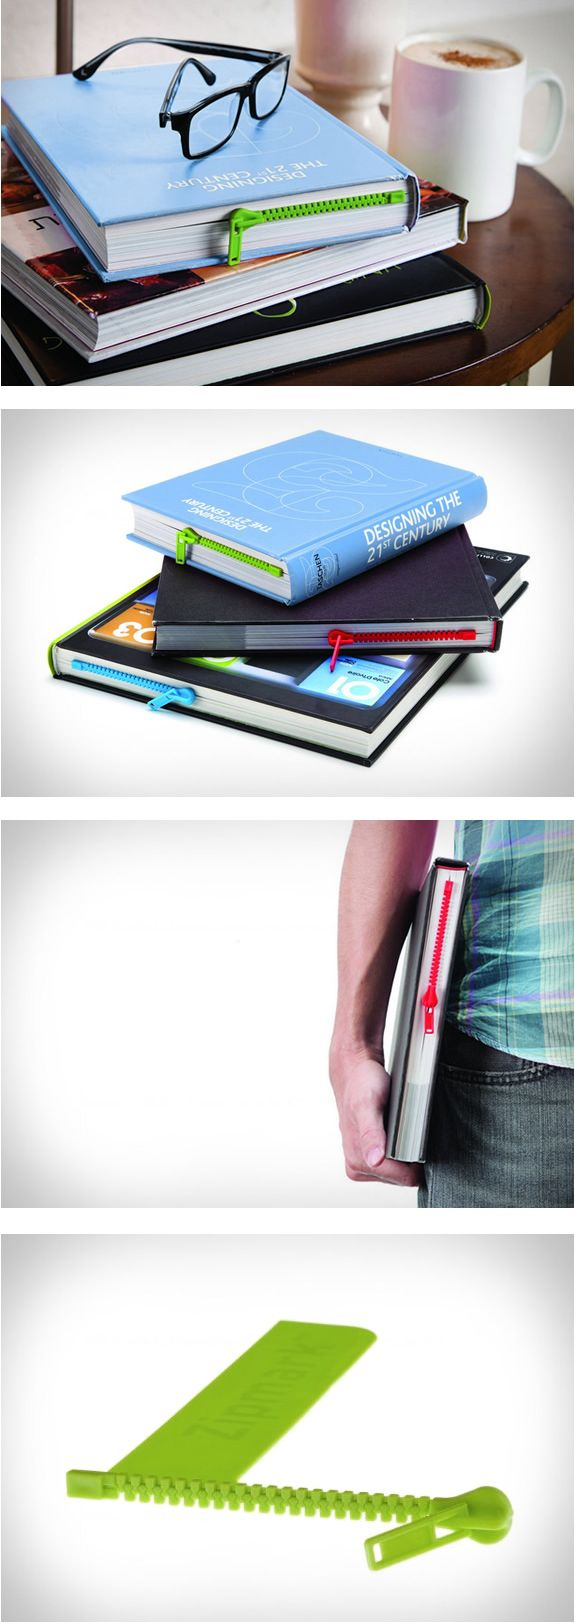 Fun product by Peleg Design, the Zipmark is a bookmark book page holder in the shape of a zipper.